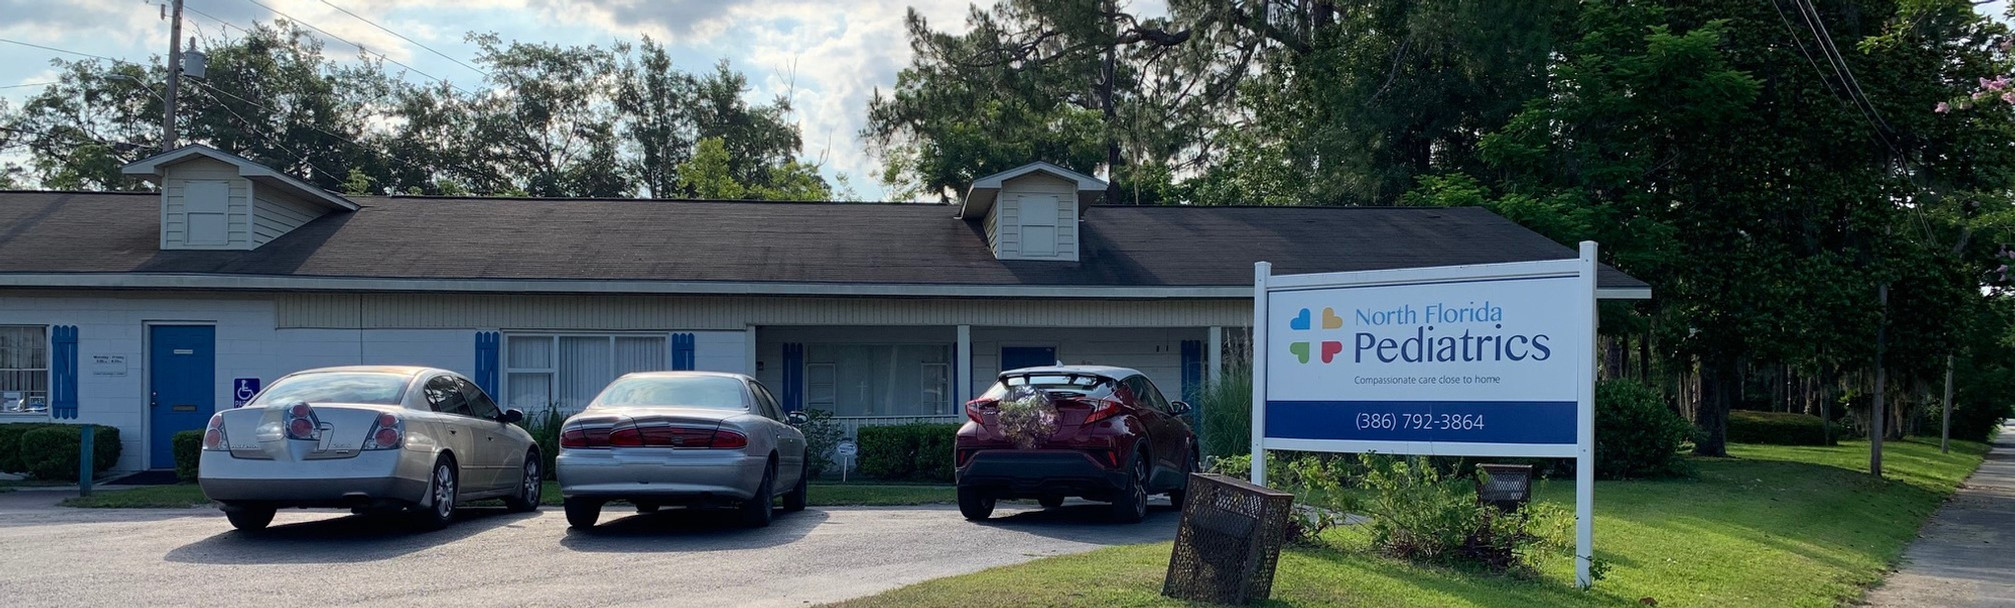 North Florida Pediatrics Jasper